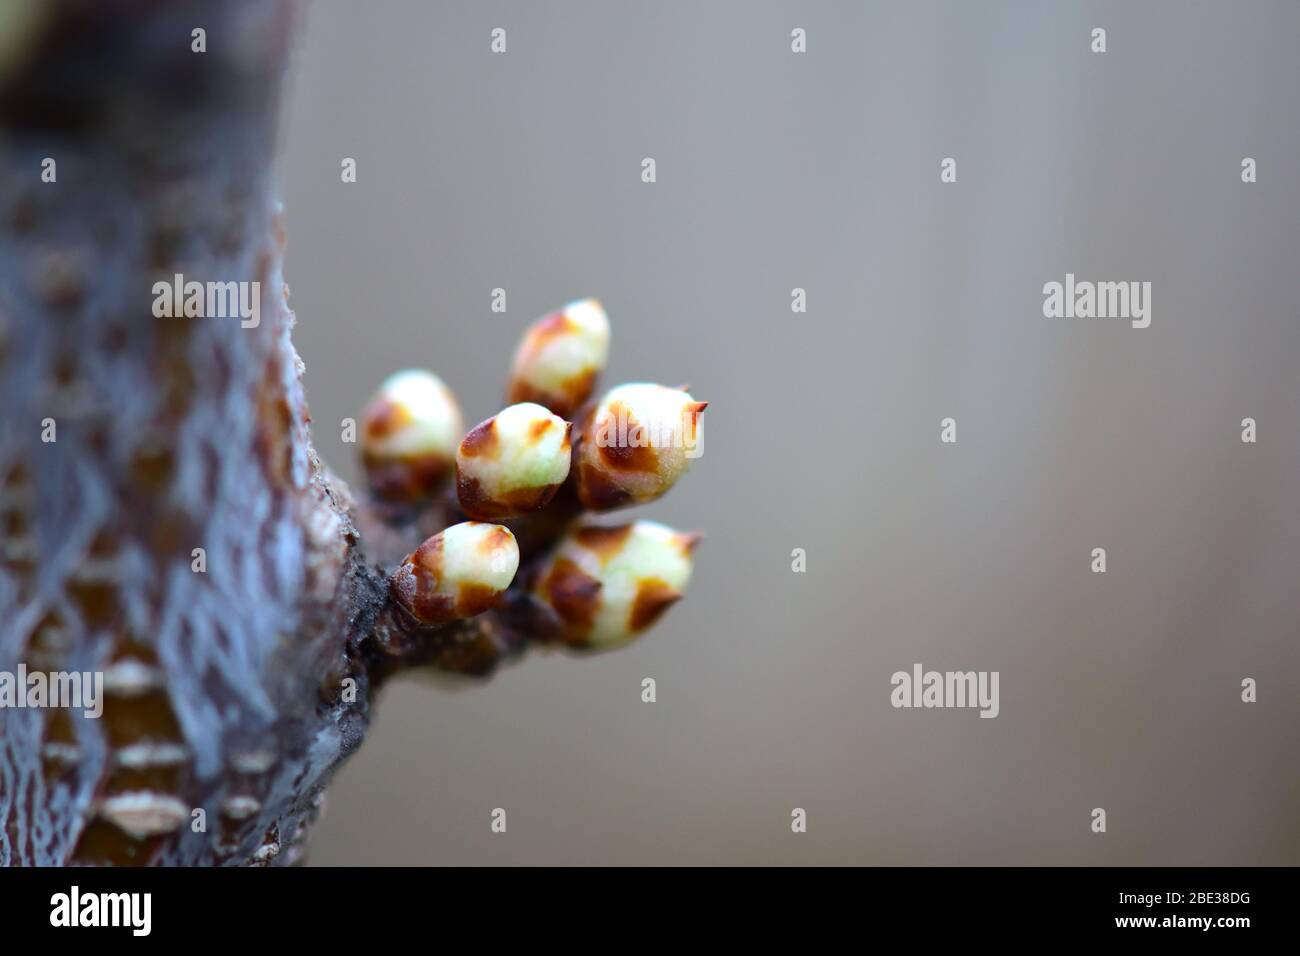 Buds on the tree branch. Bunch of oculuses. Macro. Copy-space. Stock Photo